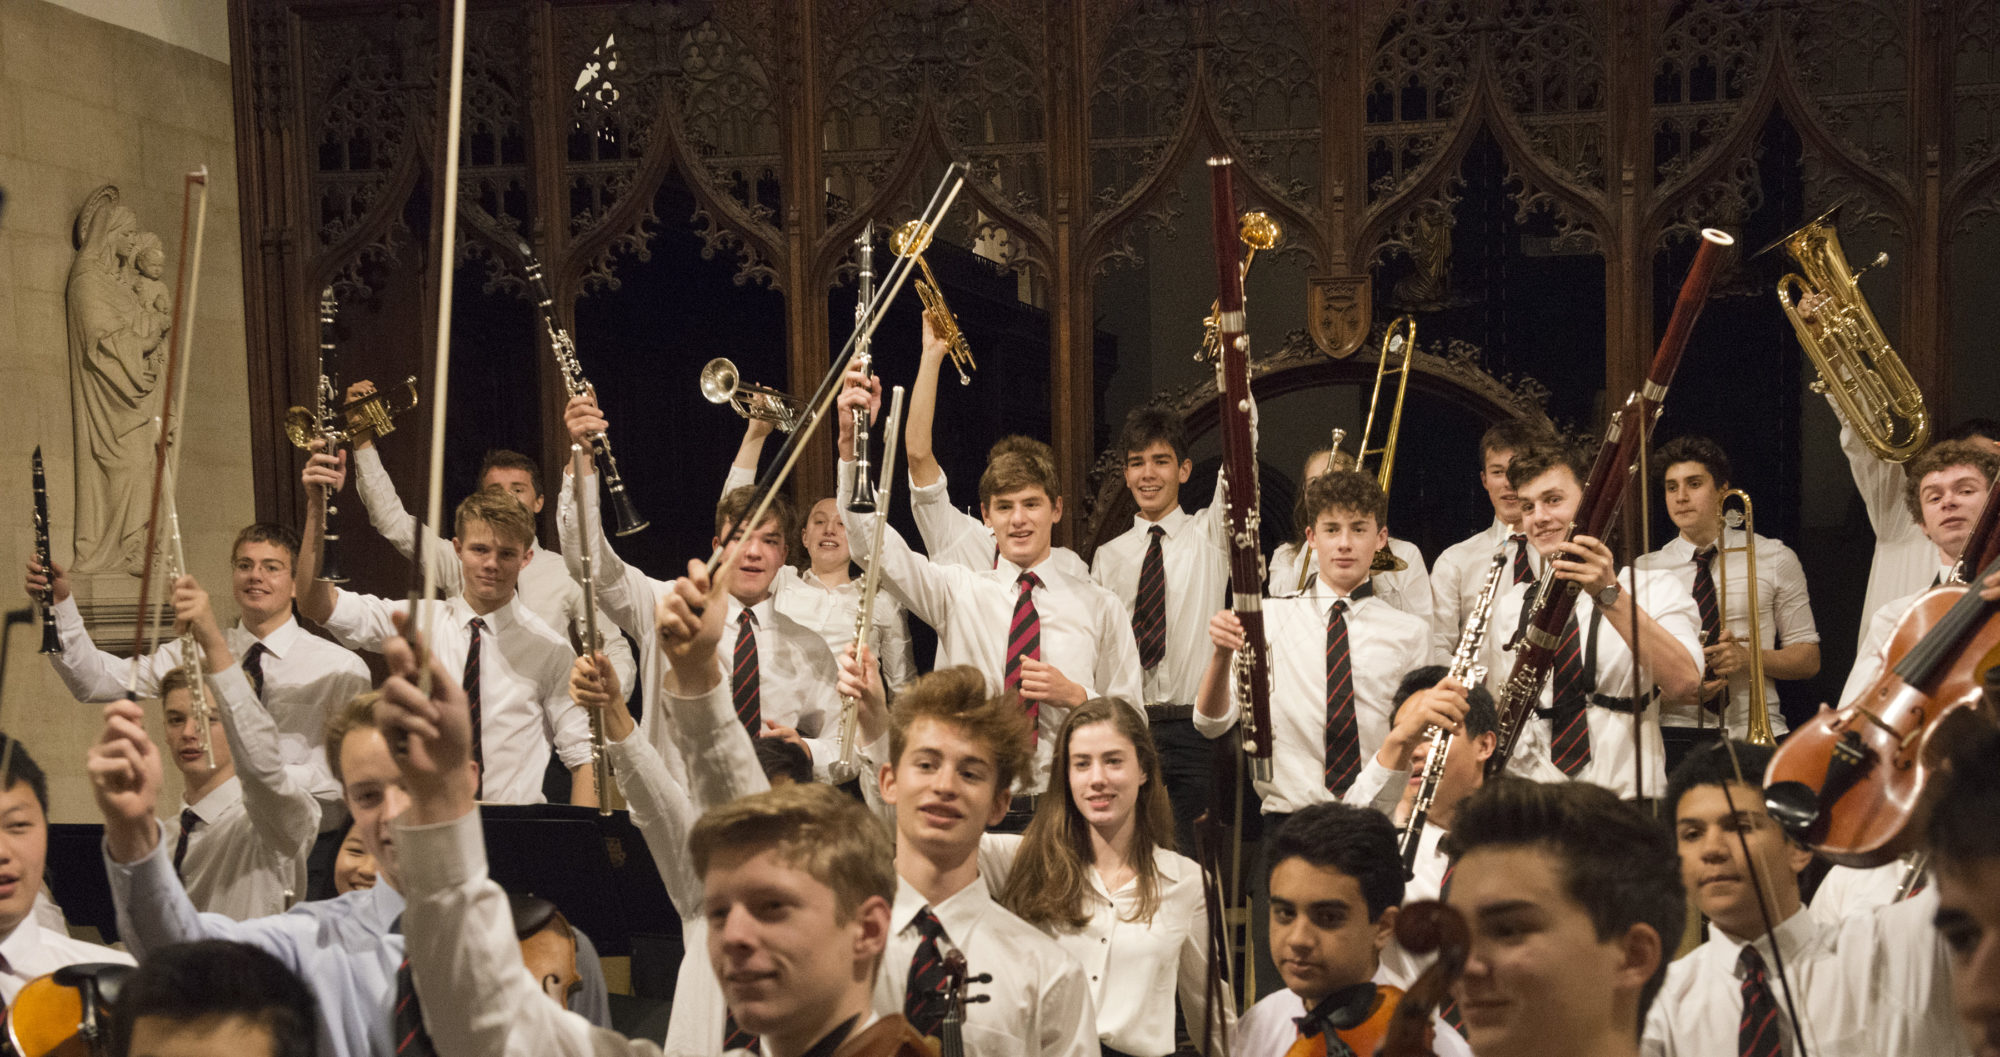 Magdalen College School pupils waving musical instruments in the chapel of St John the Evangelist Oxford